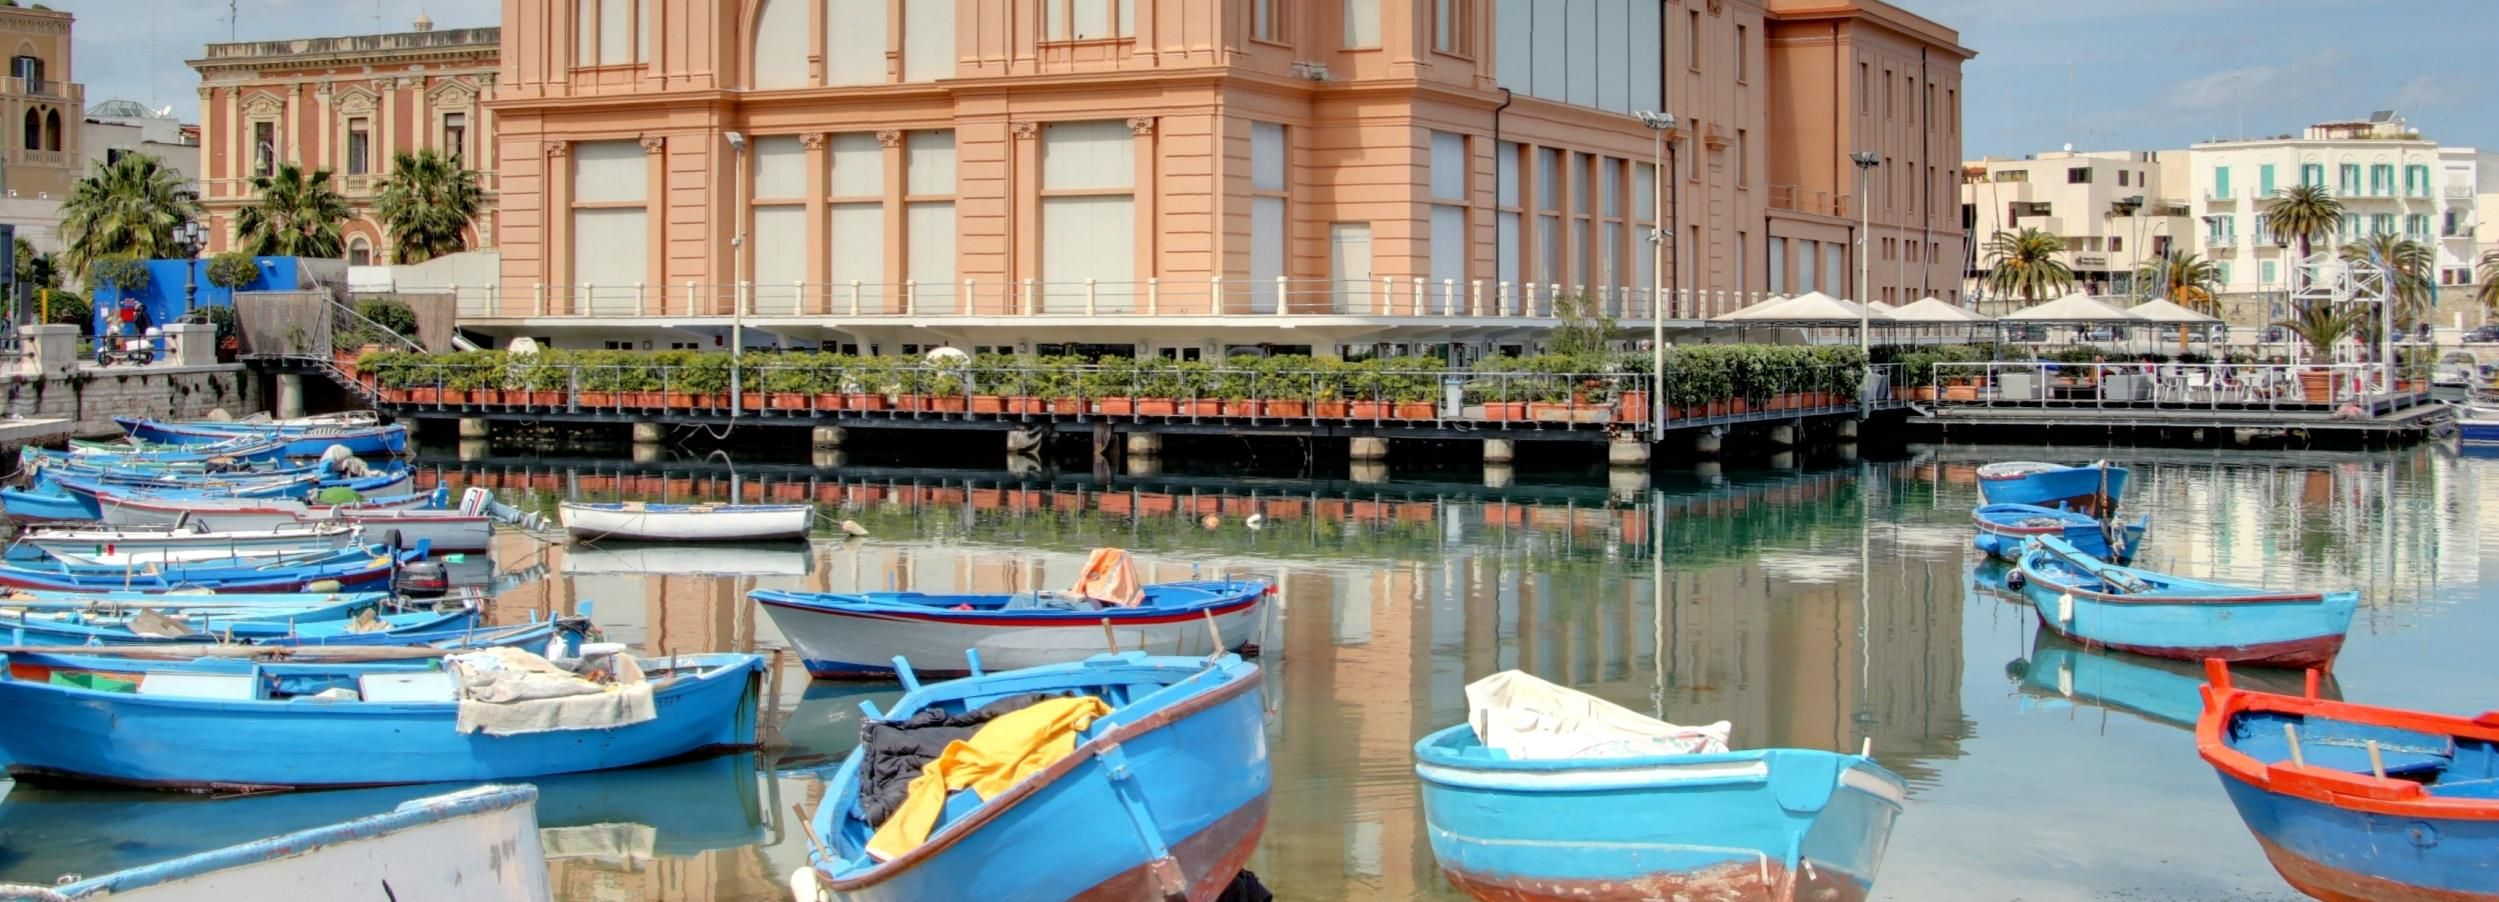 Bari: Guided Tour of the Old City